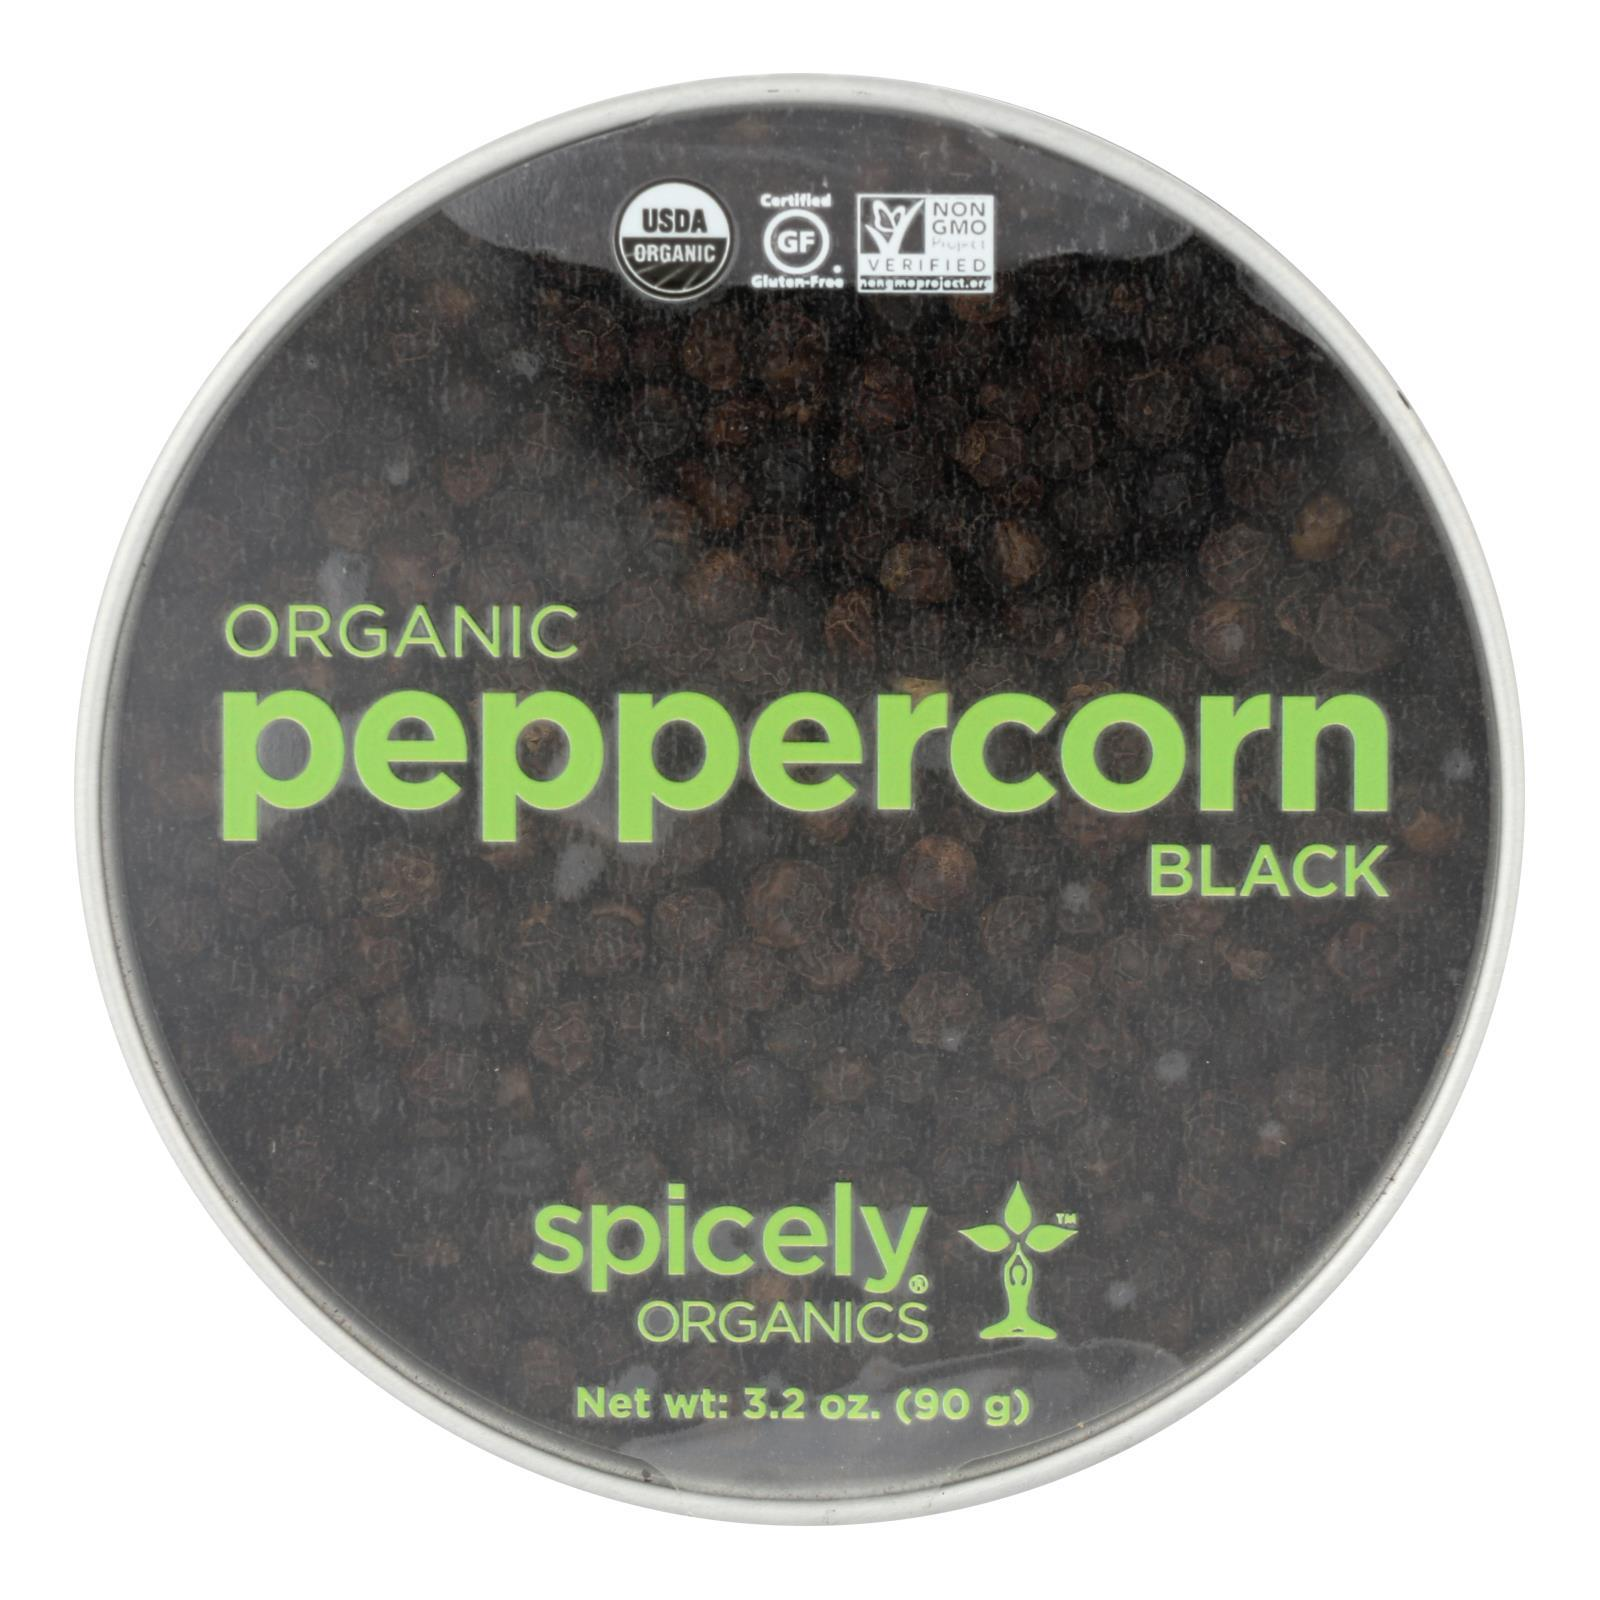 Spicely Organics - Organic Peppercorn - Black - Case Of 2 - 3.2 Oz. - BeeGreen